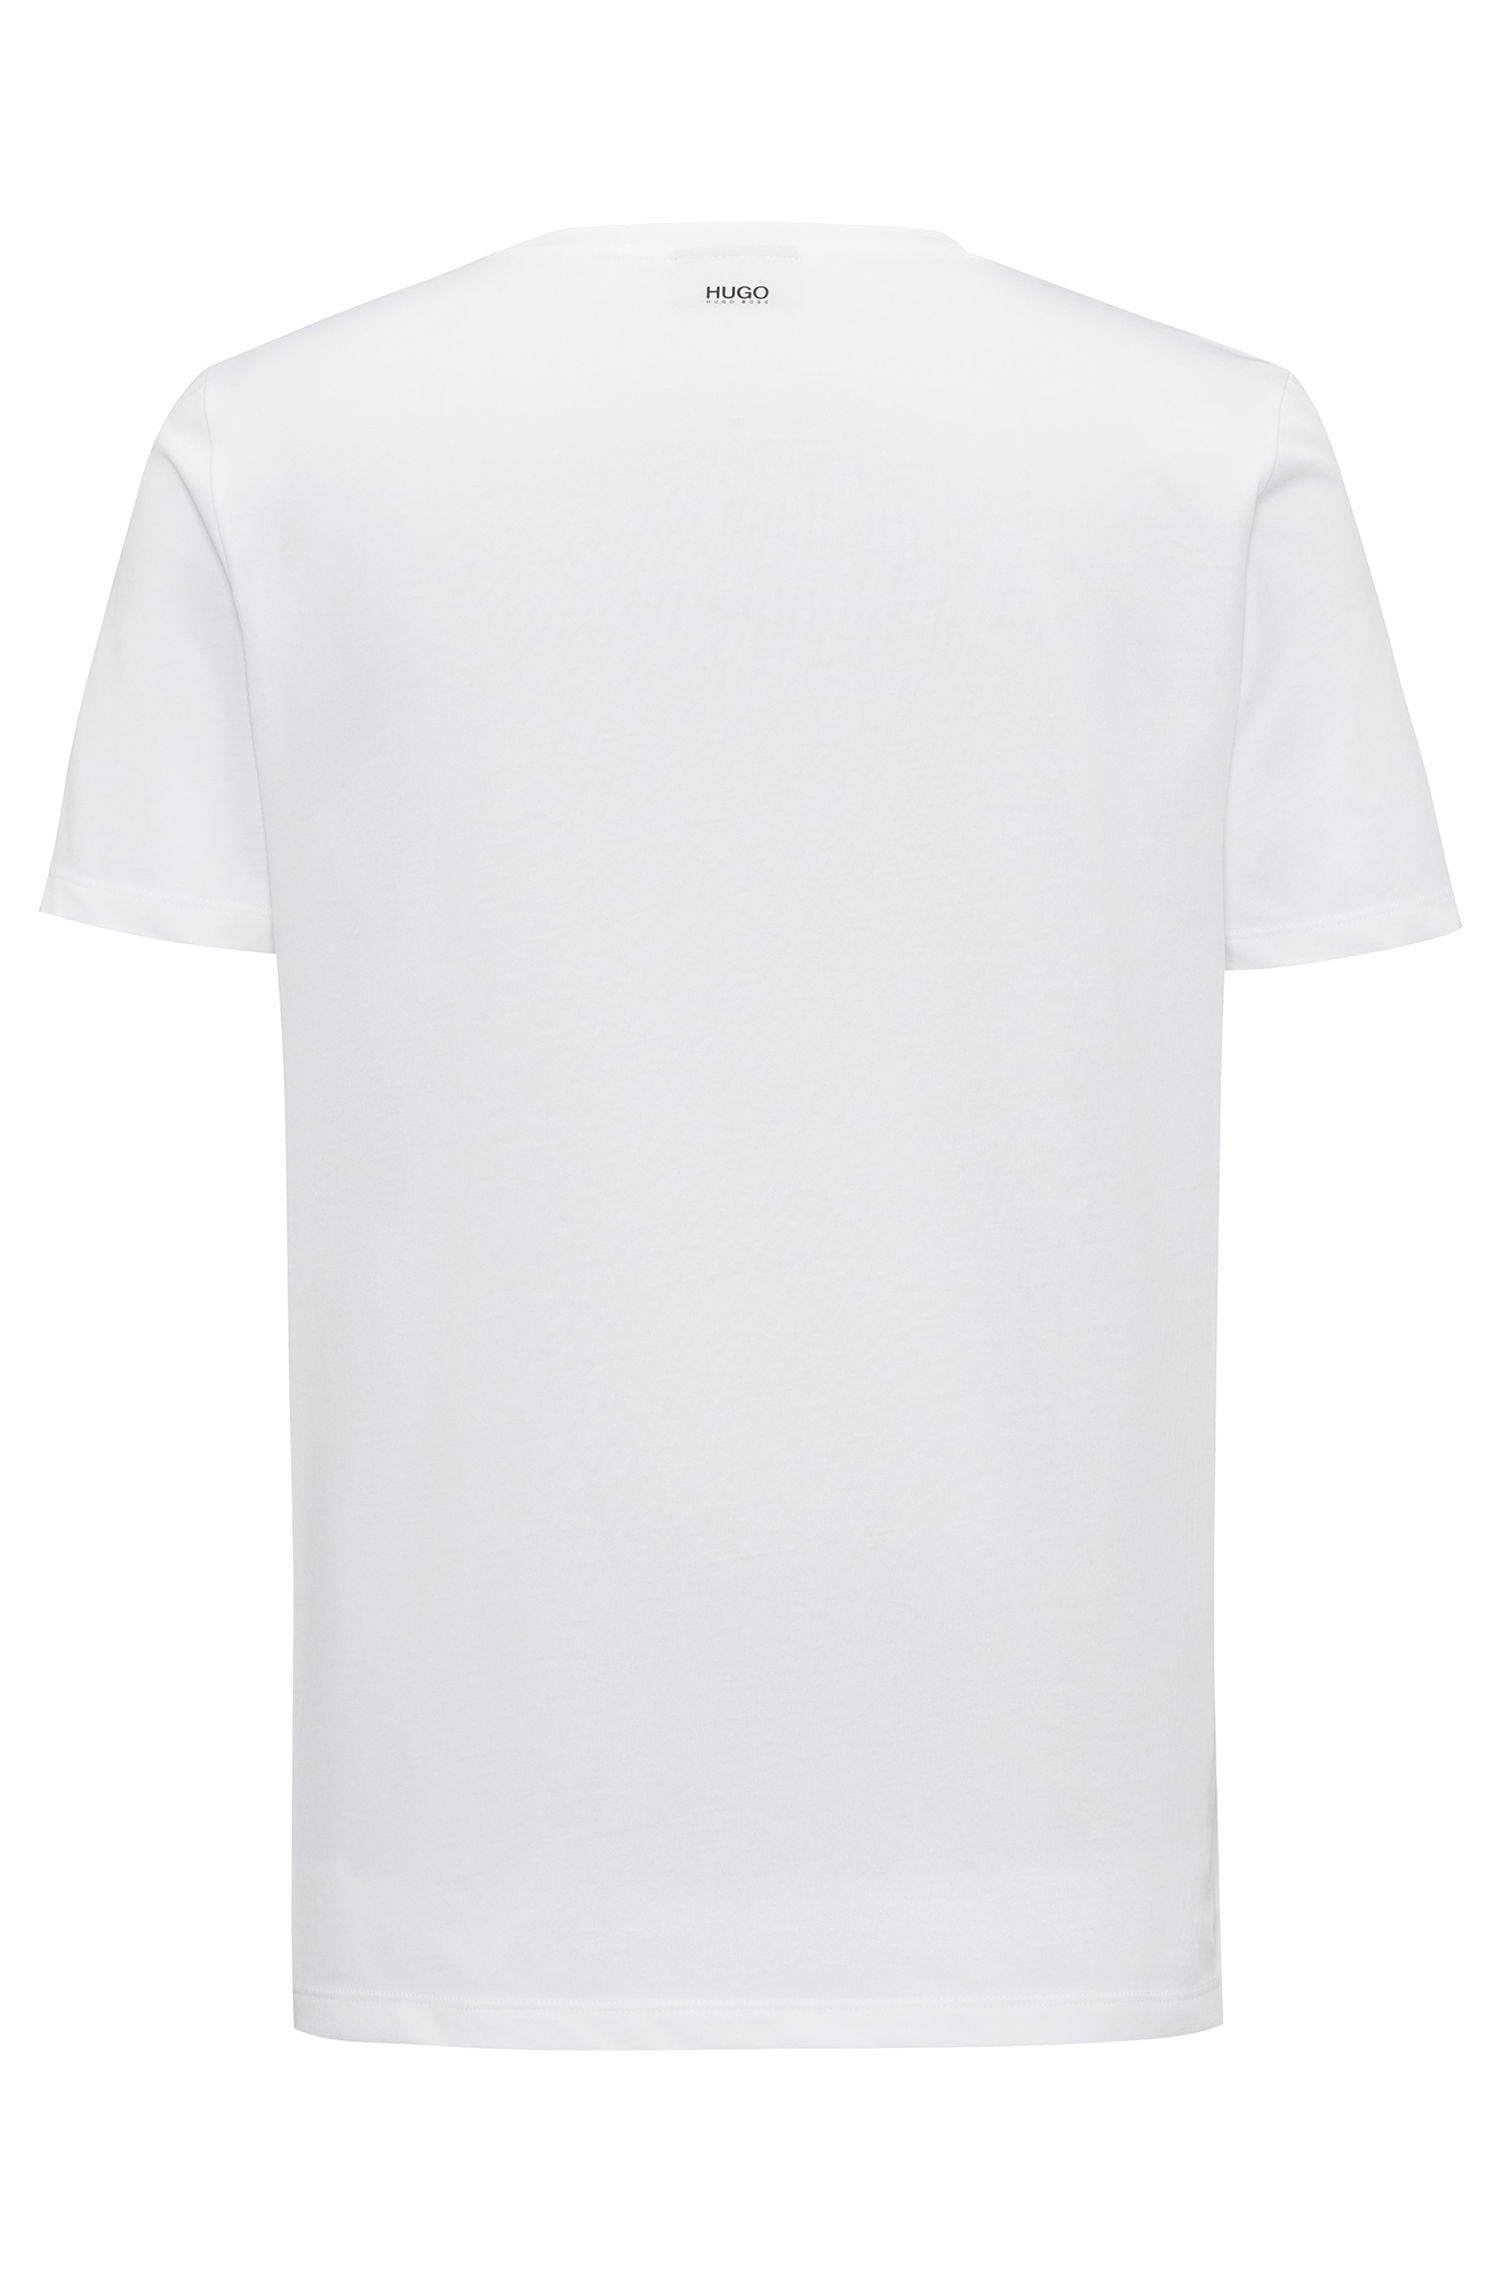 Cotton Blend Graphic Print T-Shirt | Dashy